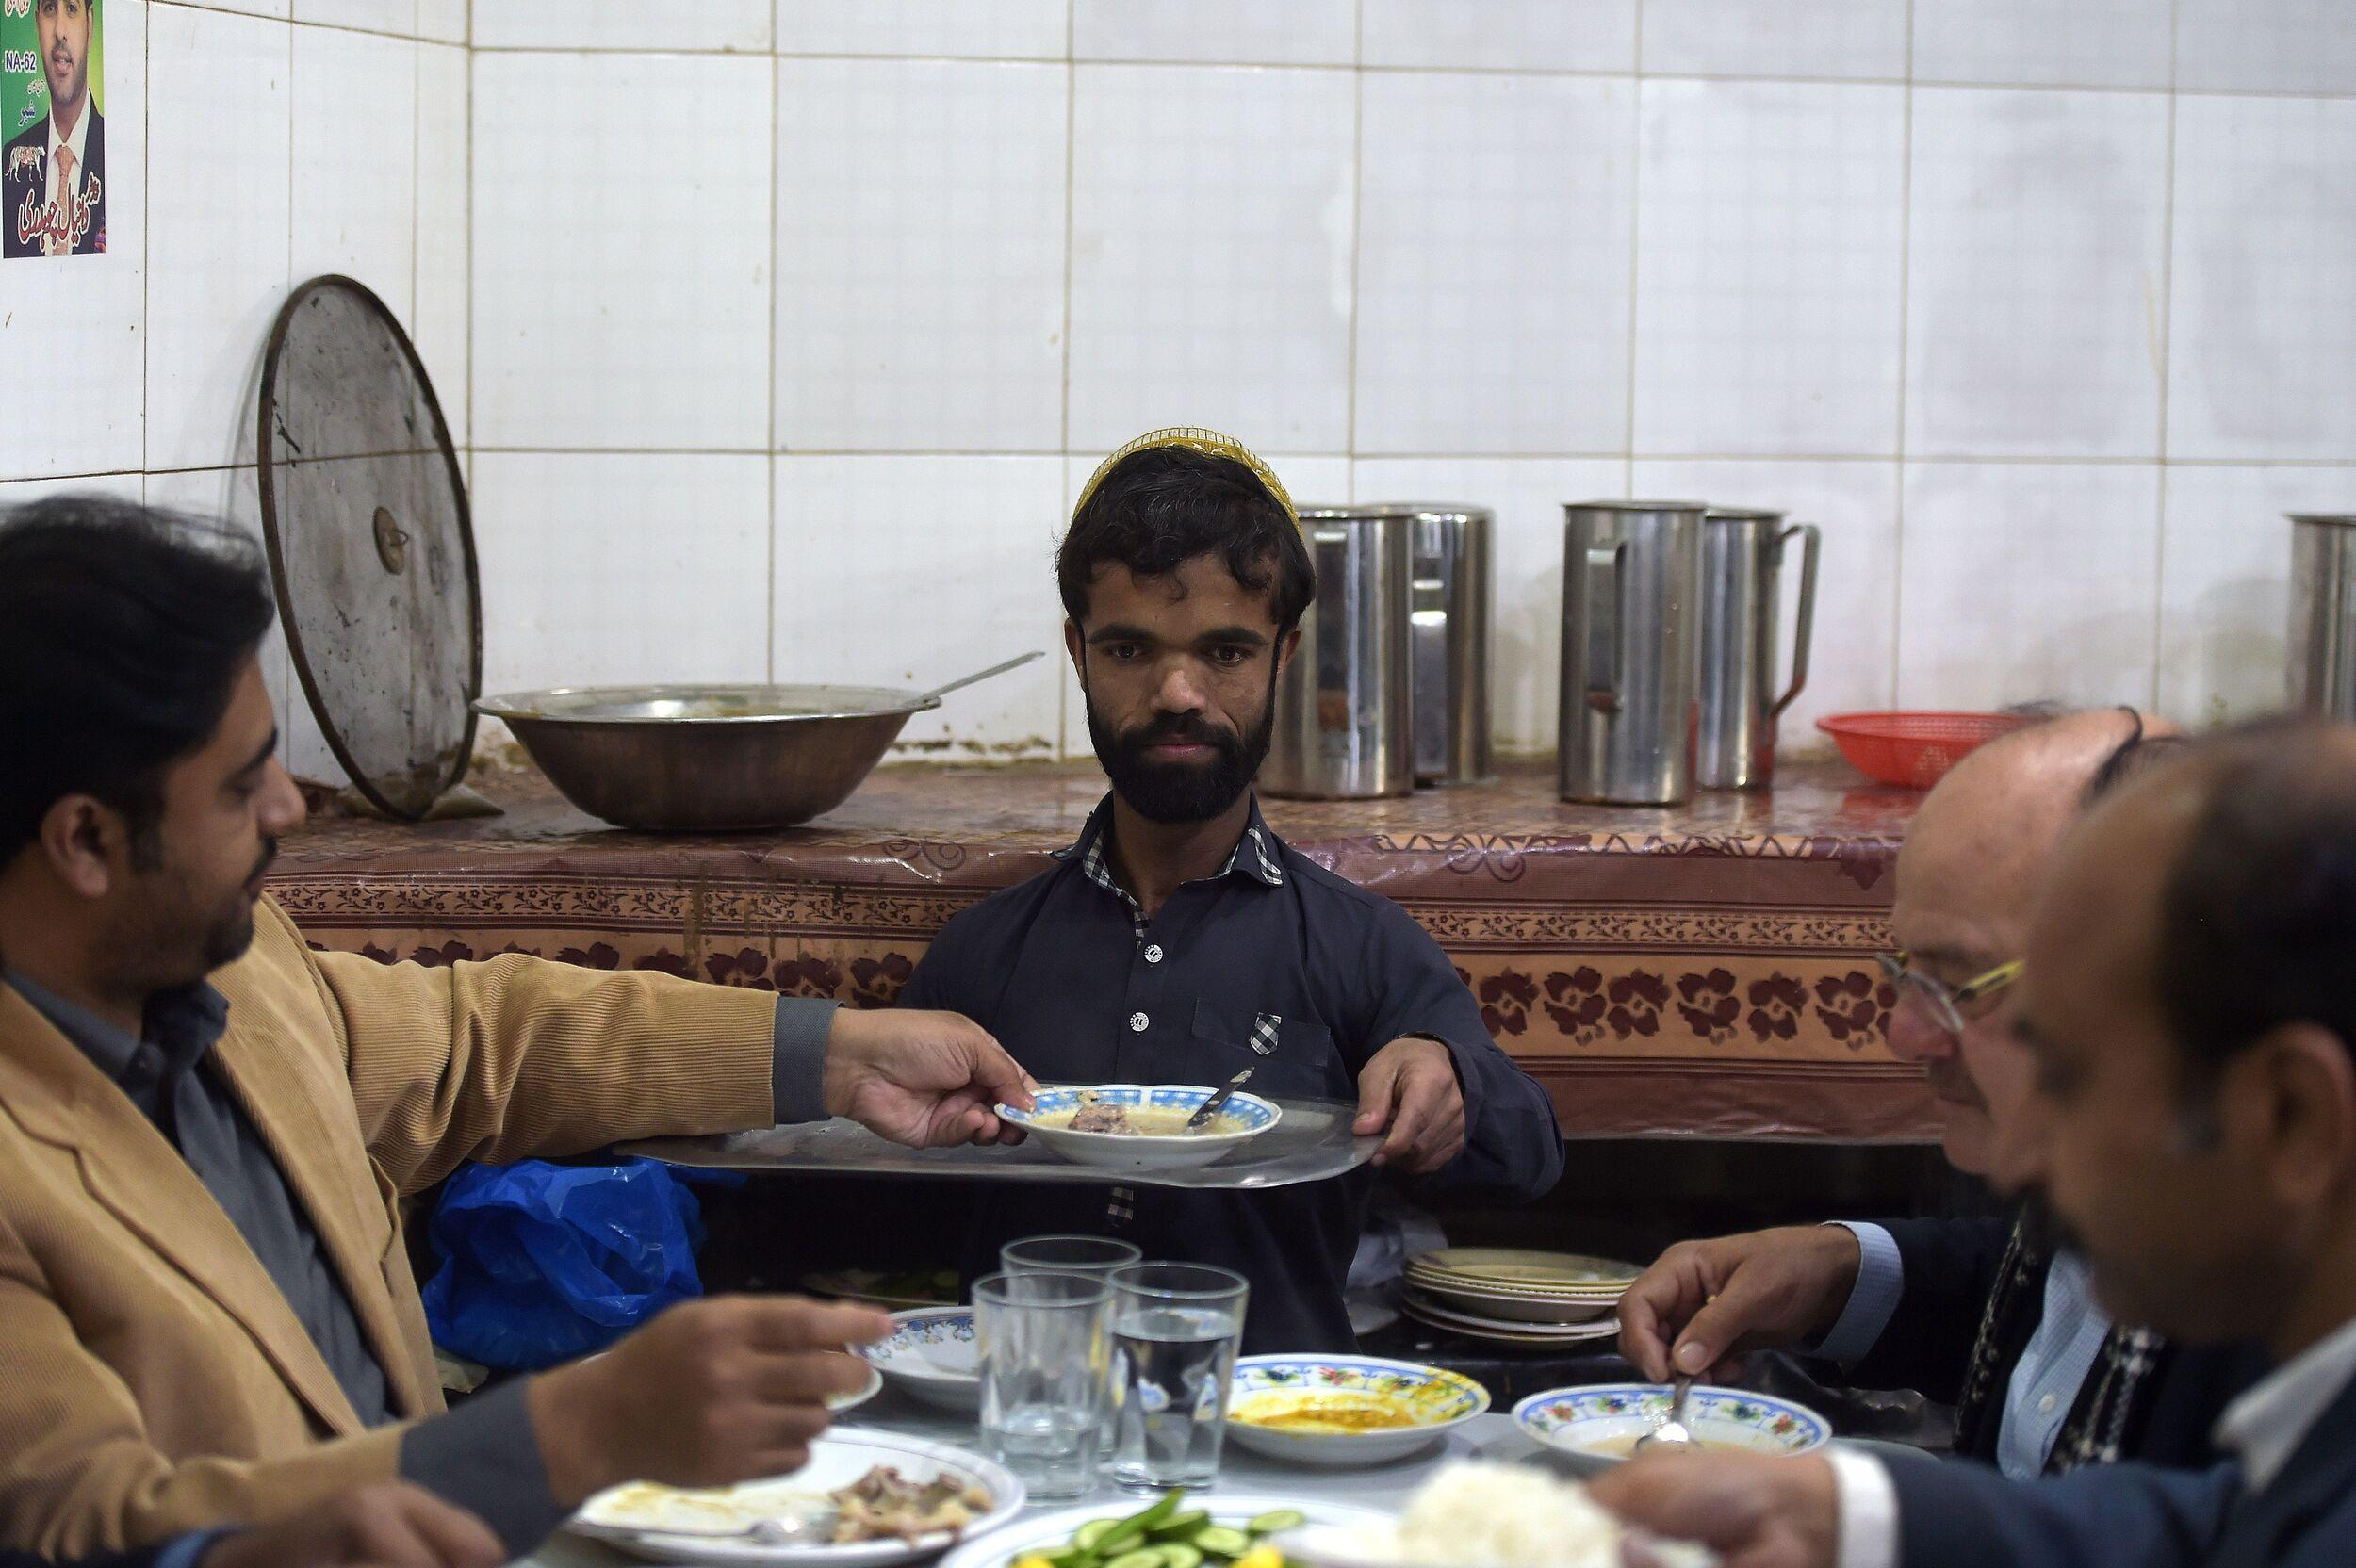 In this picture taken on February 22, 2019, Rozi Khan (C), a 25-year-old Pakistani waiter who resembles US actor Peter Dinklage, serves food to customers at Dilbar Hotel in Rawalpindi. - Rozi Khan had never heard of the Game of Thrones -- or its hugely popular character Tyrion Lannister -- until his striking resemblance to the dwarf anti-hero got heads turning at home. (Photo by AAMIR QURESHI / AFP) / To go with PAKISTAN-LIFESTYLE-TELEVISION-ENTERTAINMENT (Photo credit should read AAMIR QURESHI/AFP/Getty Images)